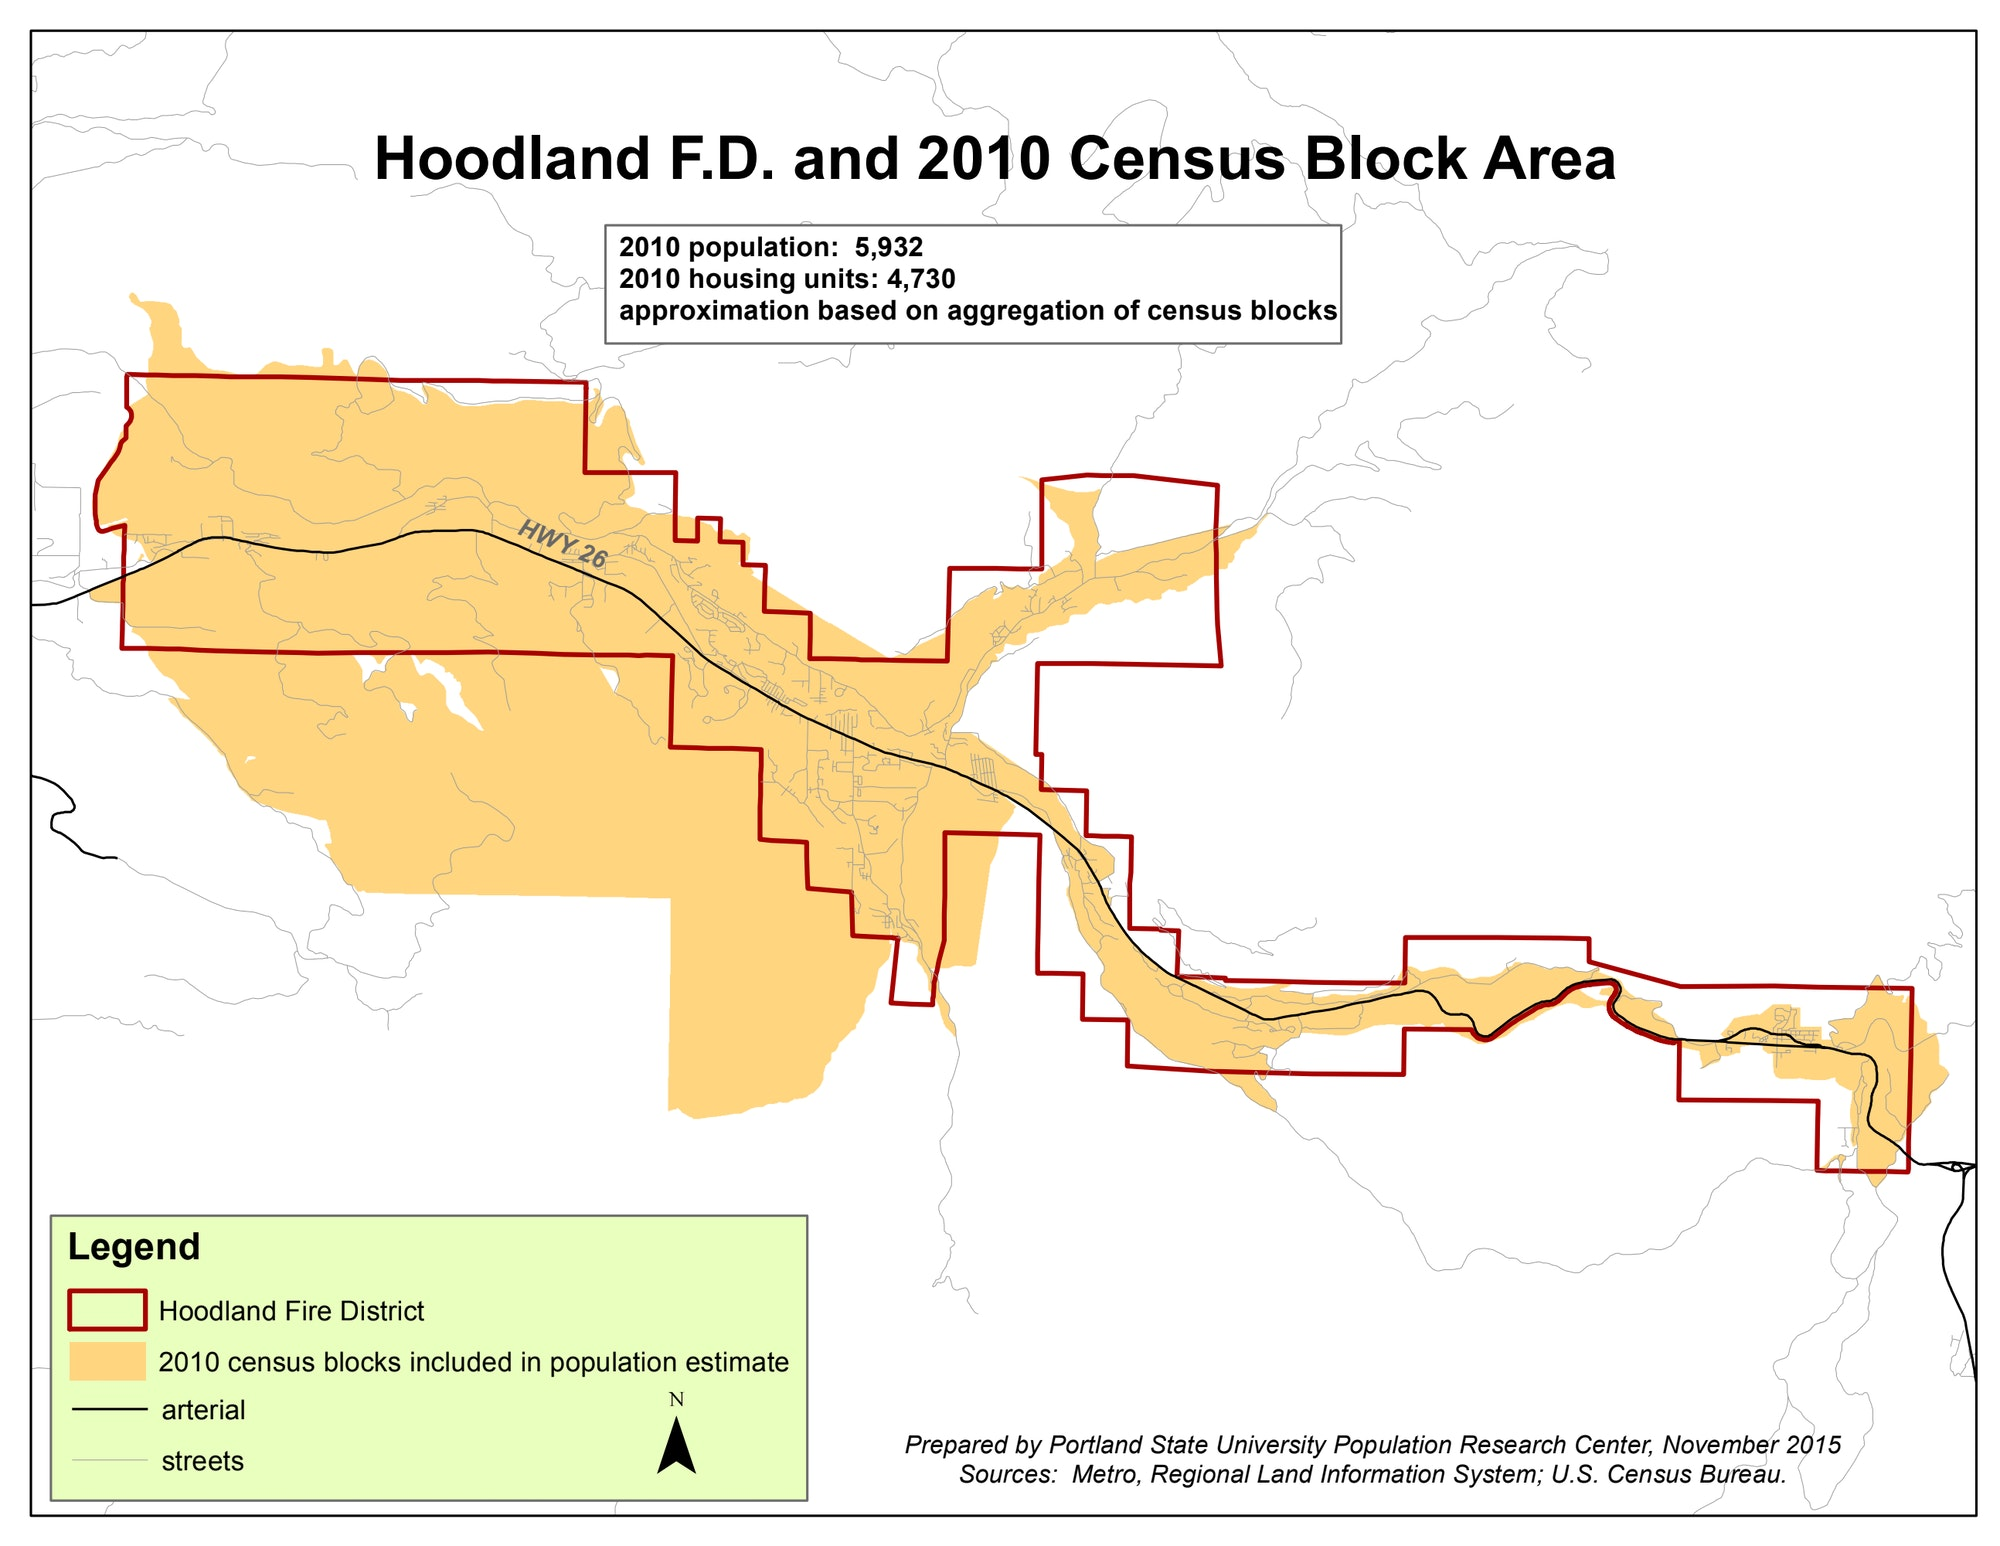 As of the 2010 U.S. Census, there were approximately 6,000 full-time residents in the area served by the Hoodland Fire District.